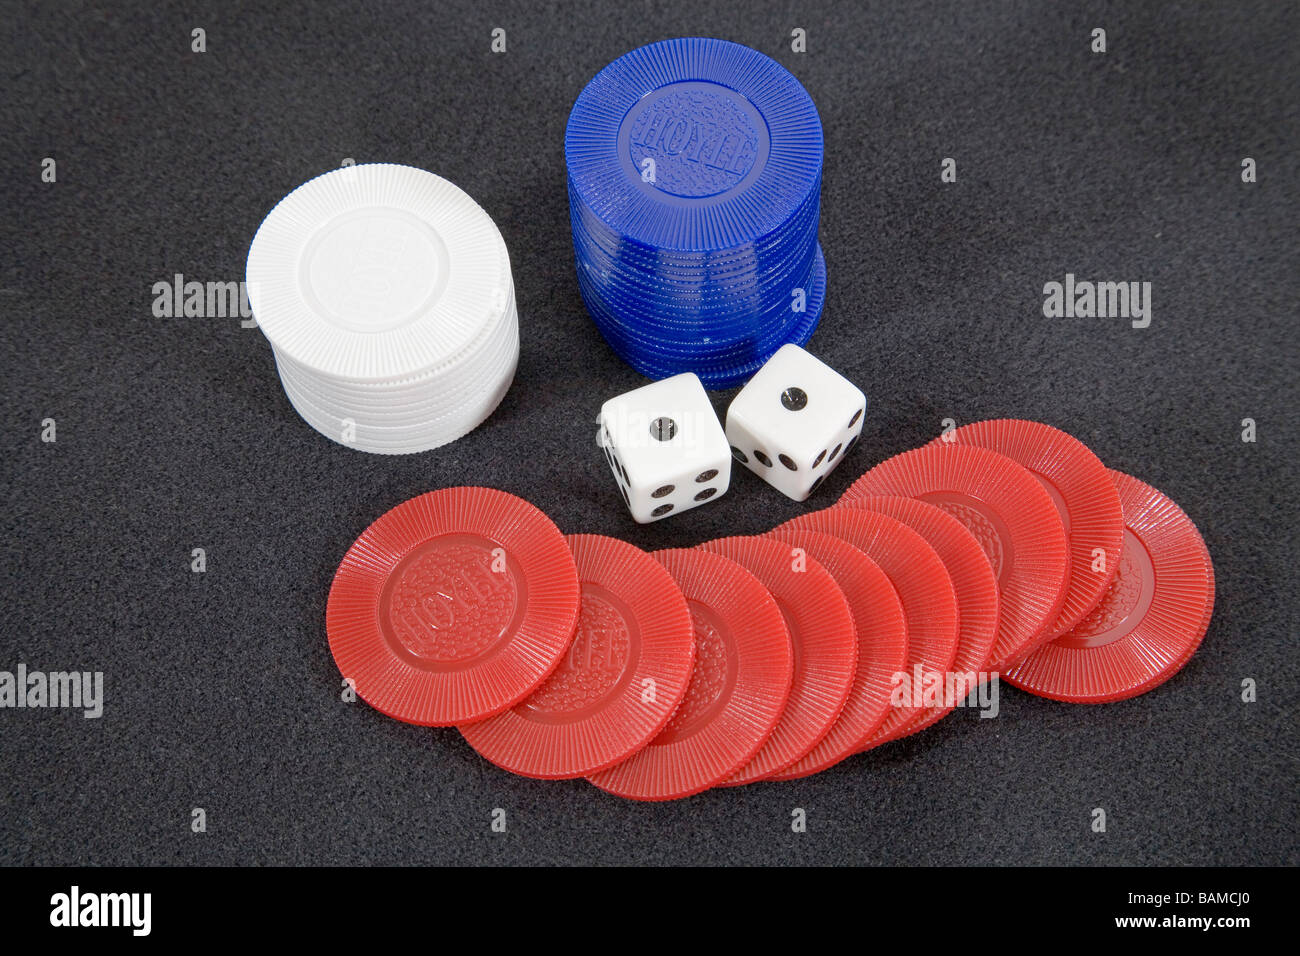 A loser Dice showing snake eyes or a double one for a total of two spots - Stock Image